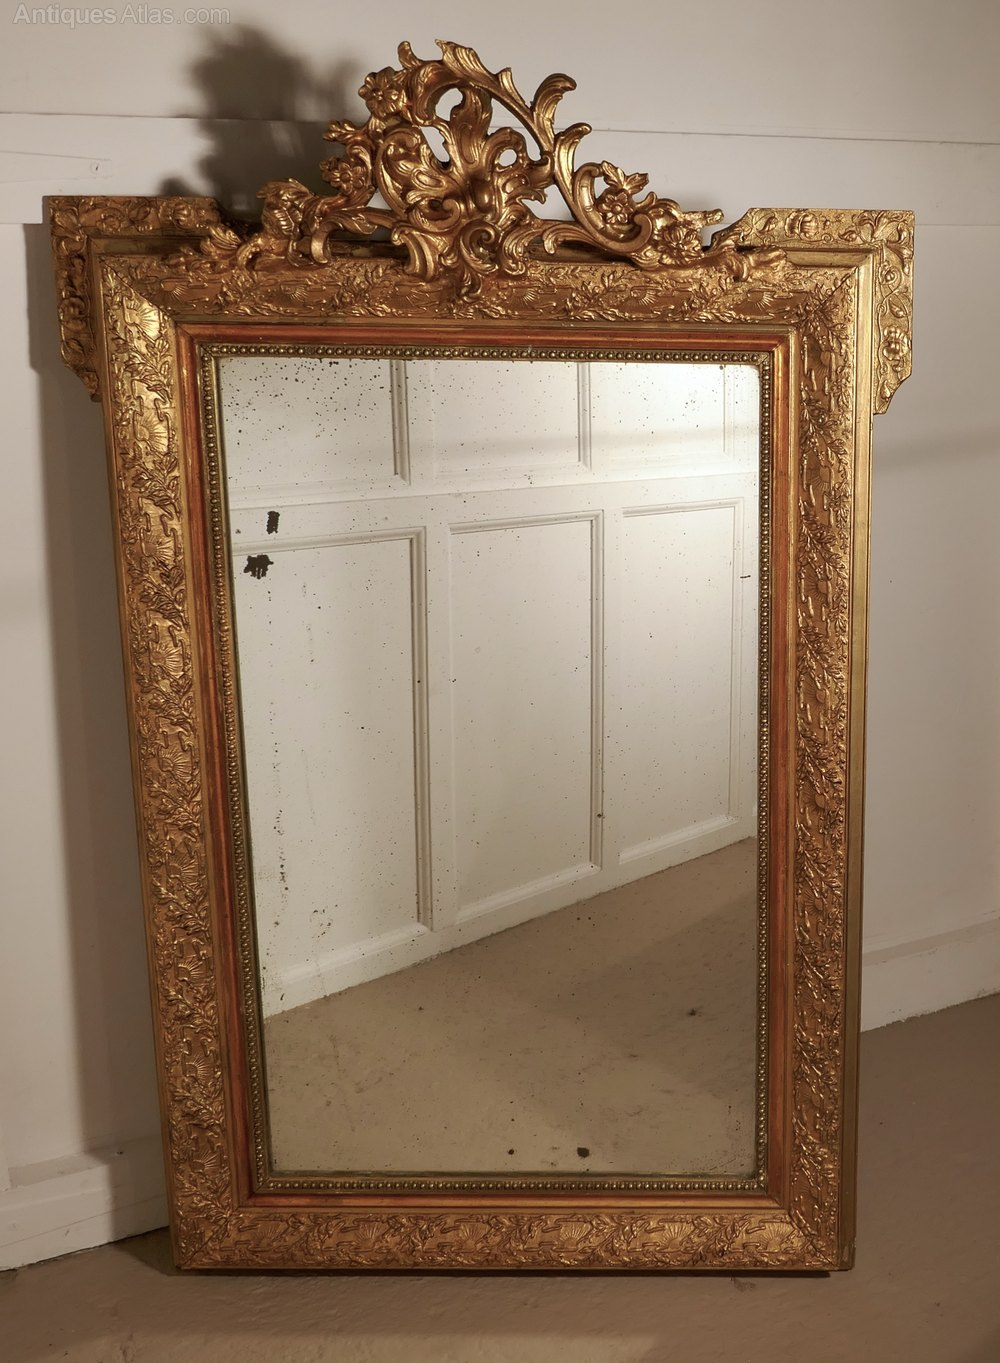 Antiques Atlas Large French Gilt Wall Mirror